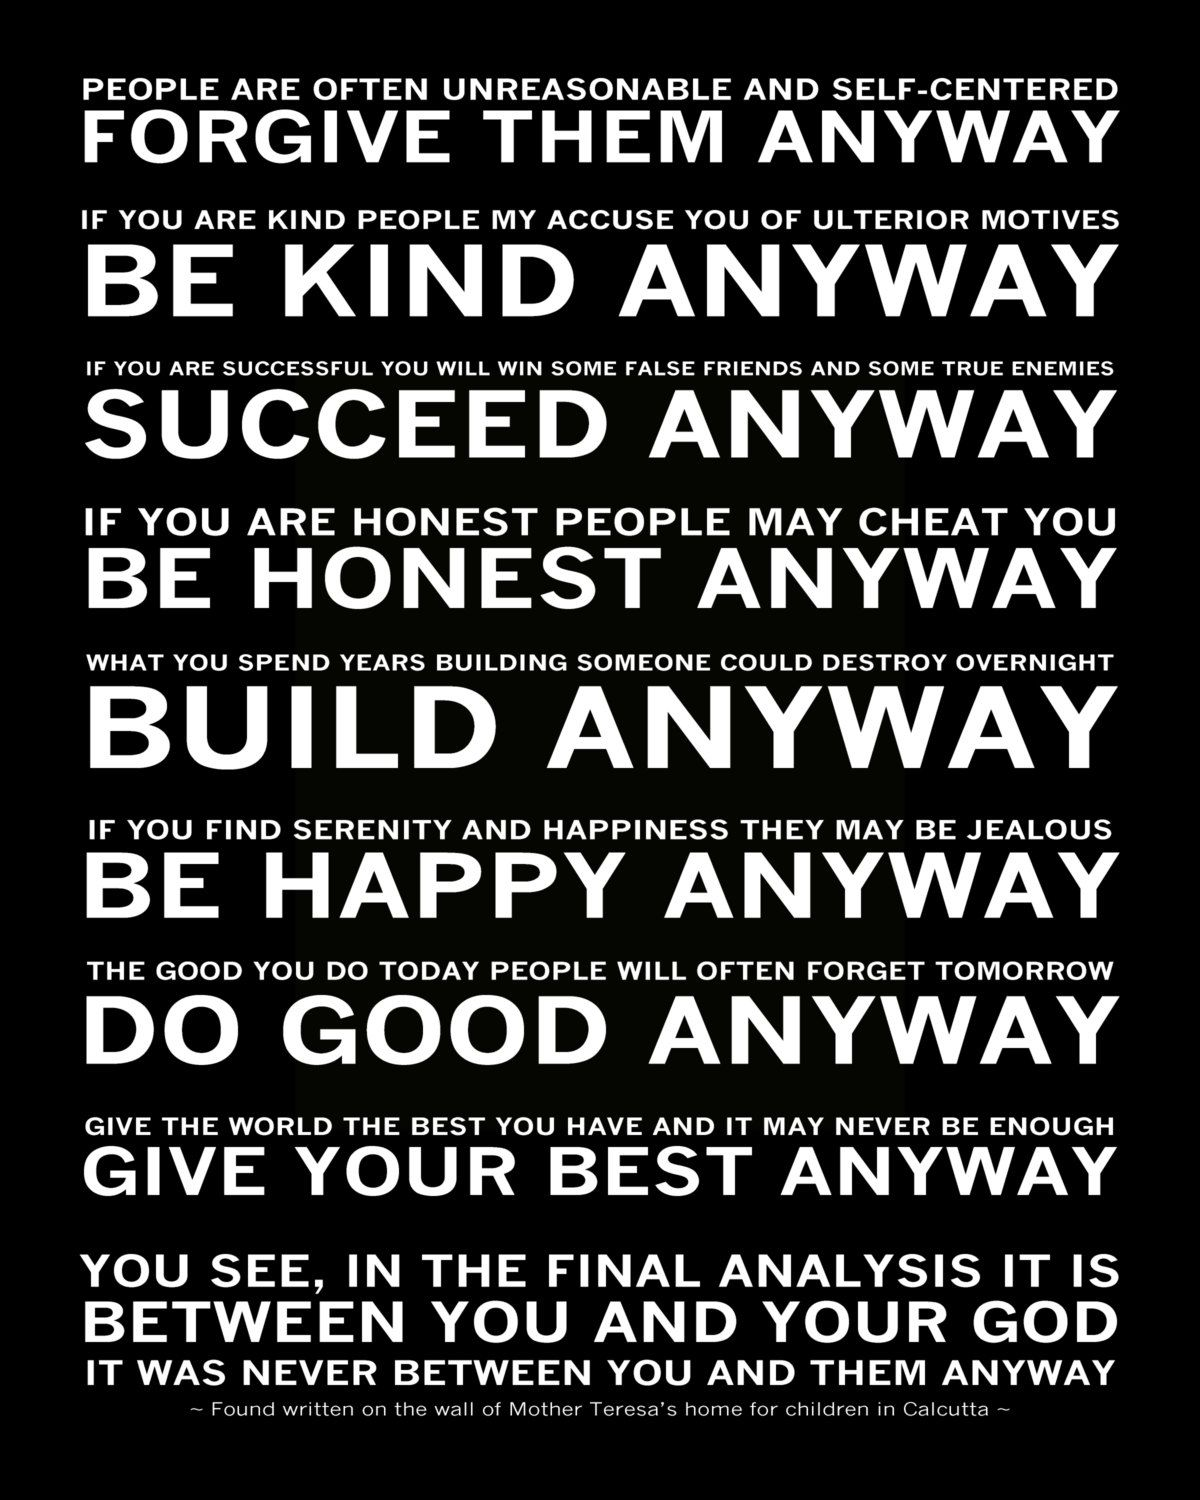 Mother Teresa Quotes Love Them Anyway Be Kind Anyway  Notable Quotables Words Of Wisdom  Pinterest